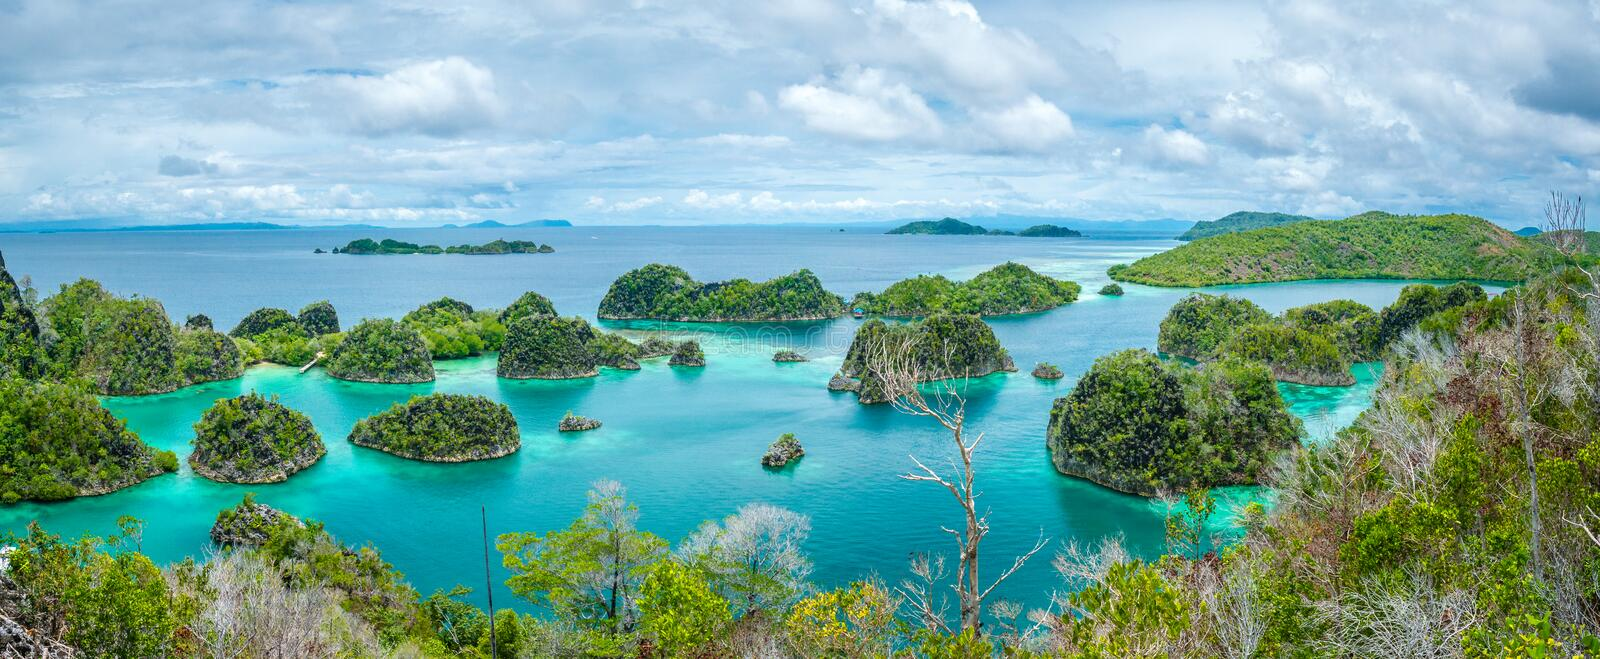 Îles de Pianemo, Raja Ampat, Papouasie occidentale, Indonésie image stock